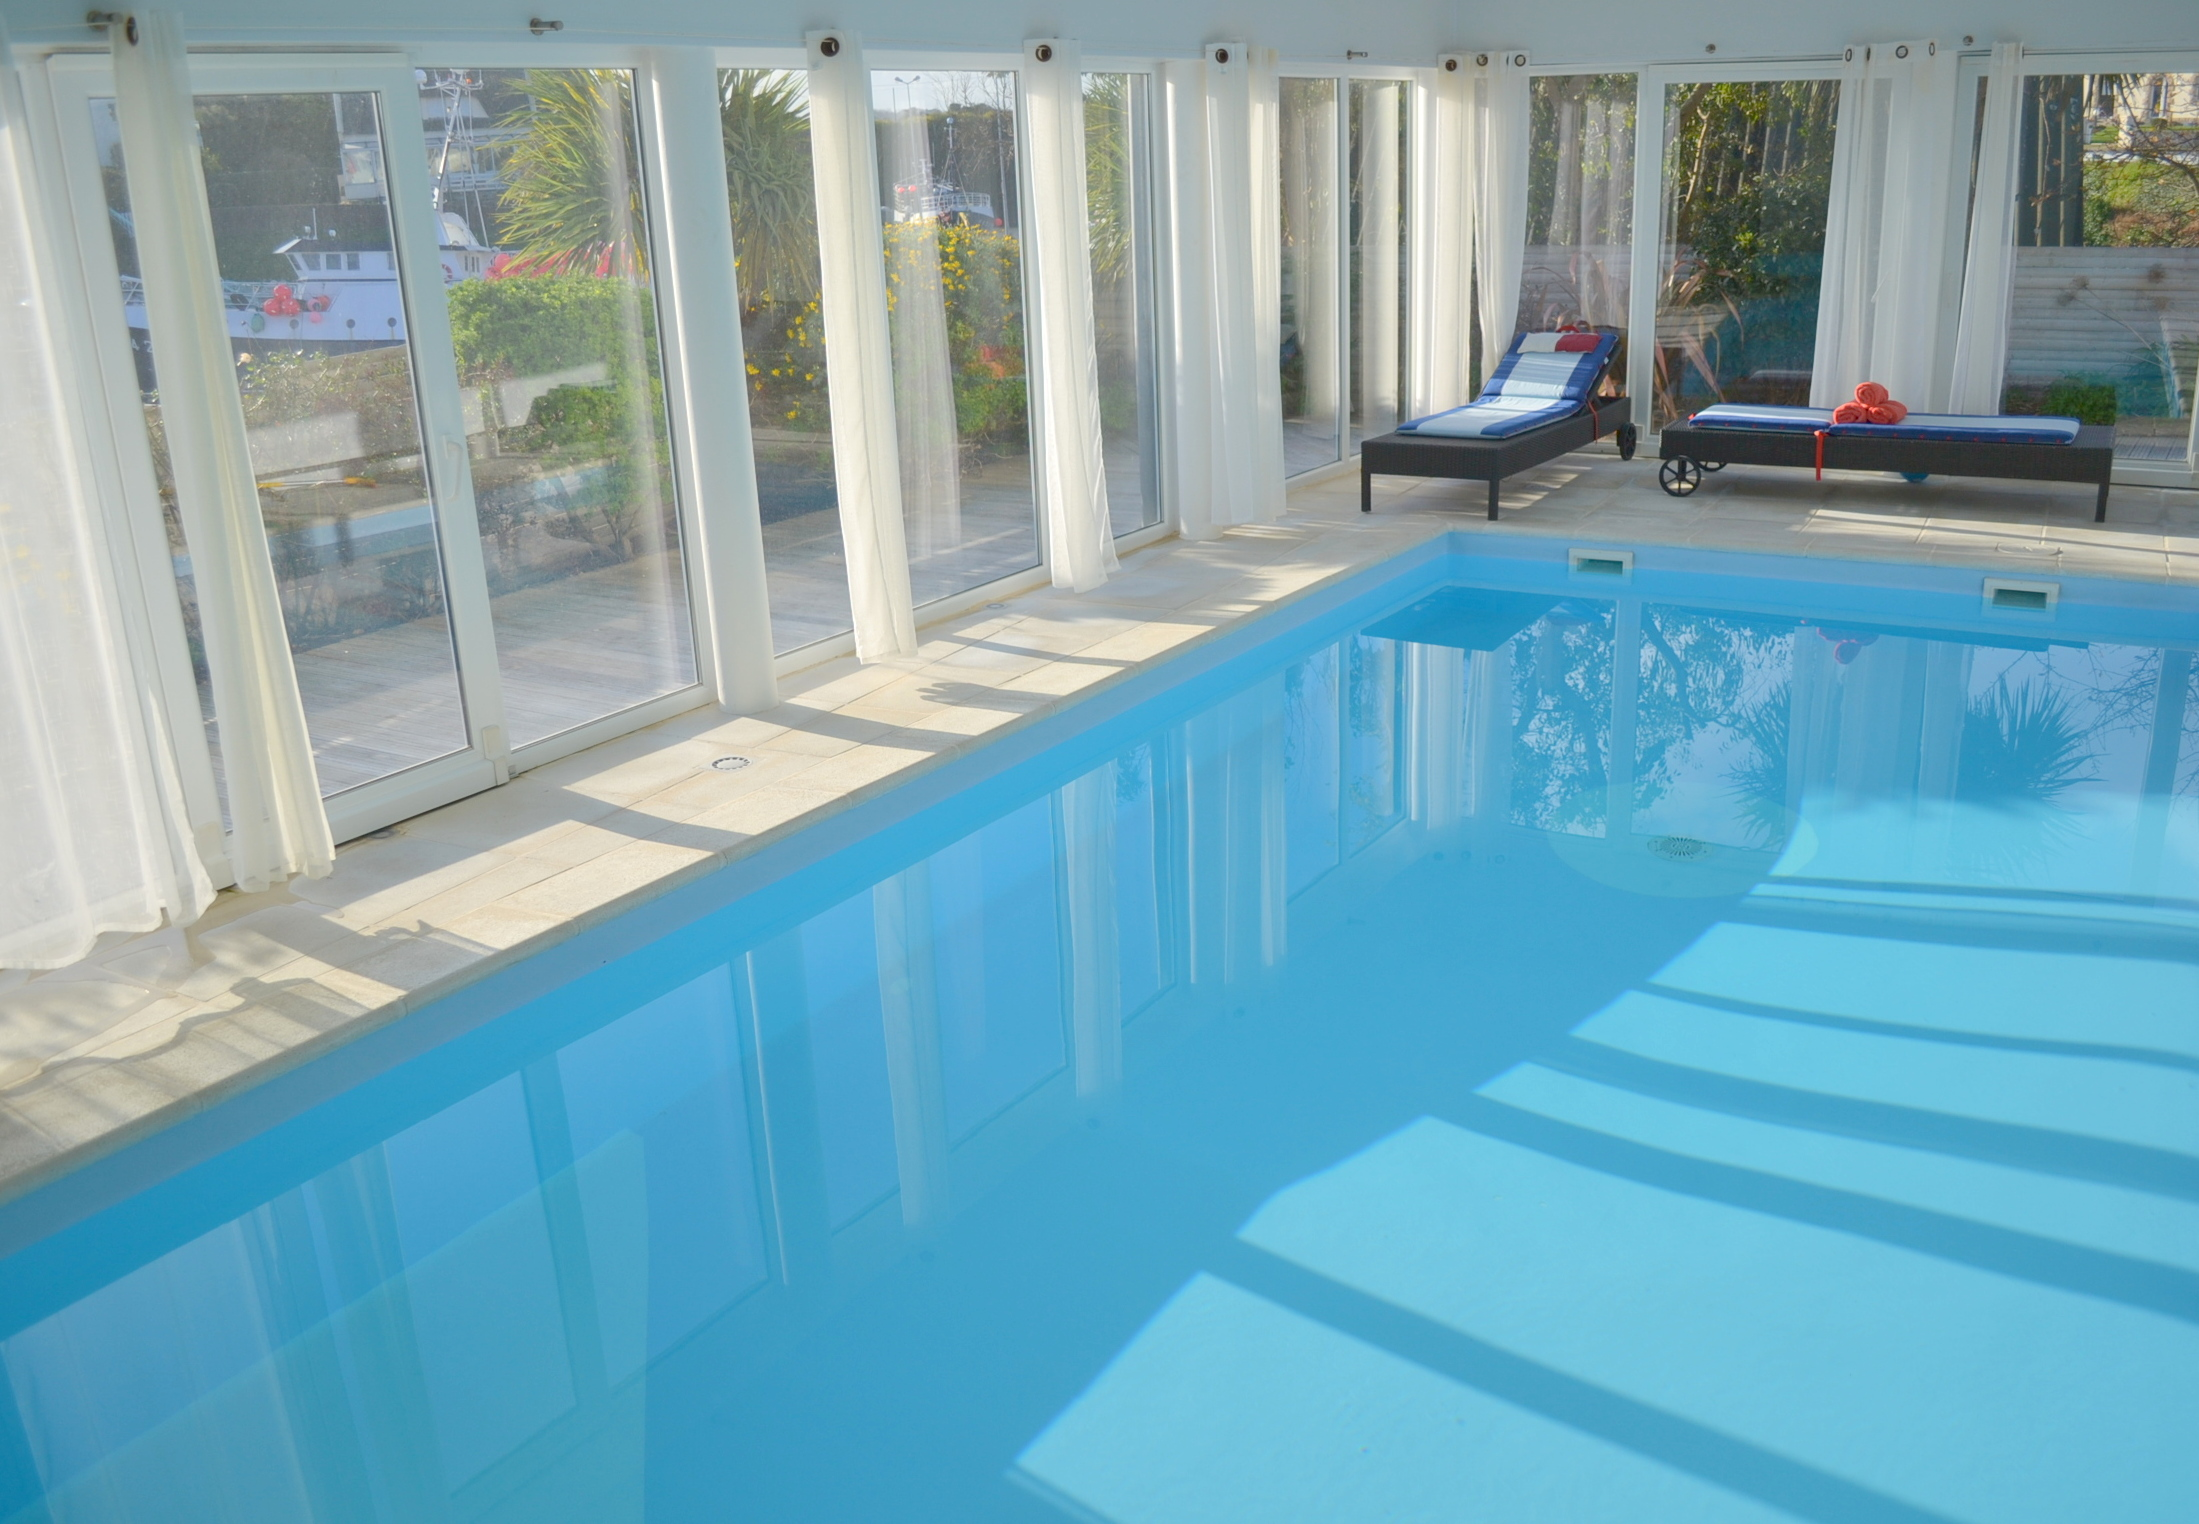 Brittany Villa Holiday Rental At 100 M From The Beach North Of Morlaix[....]